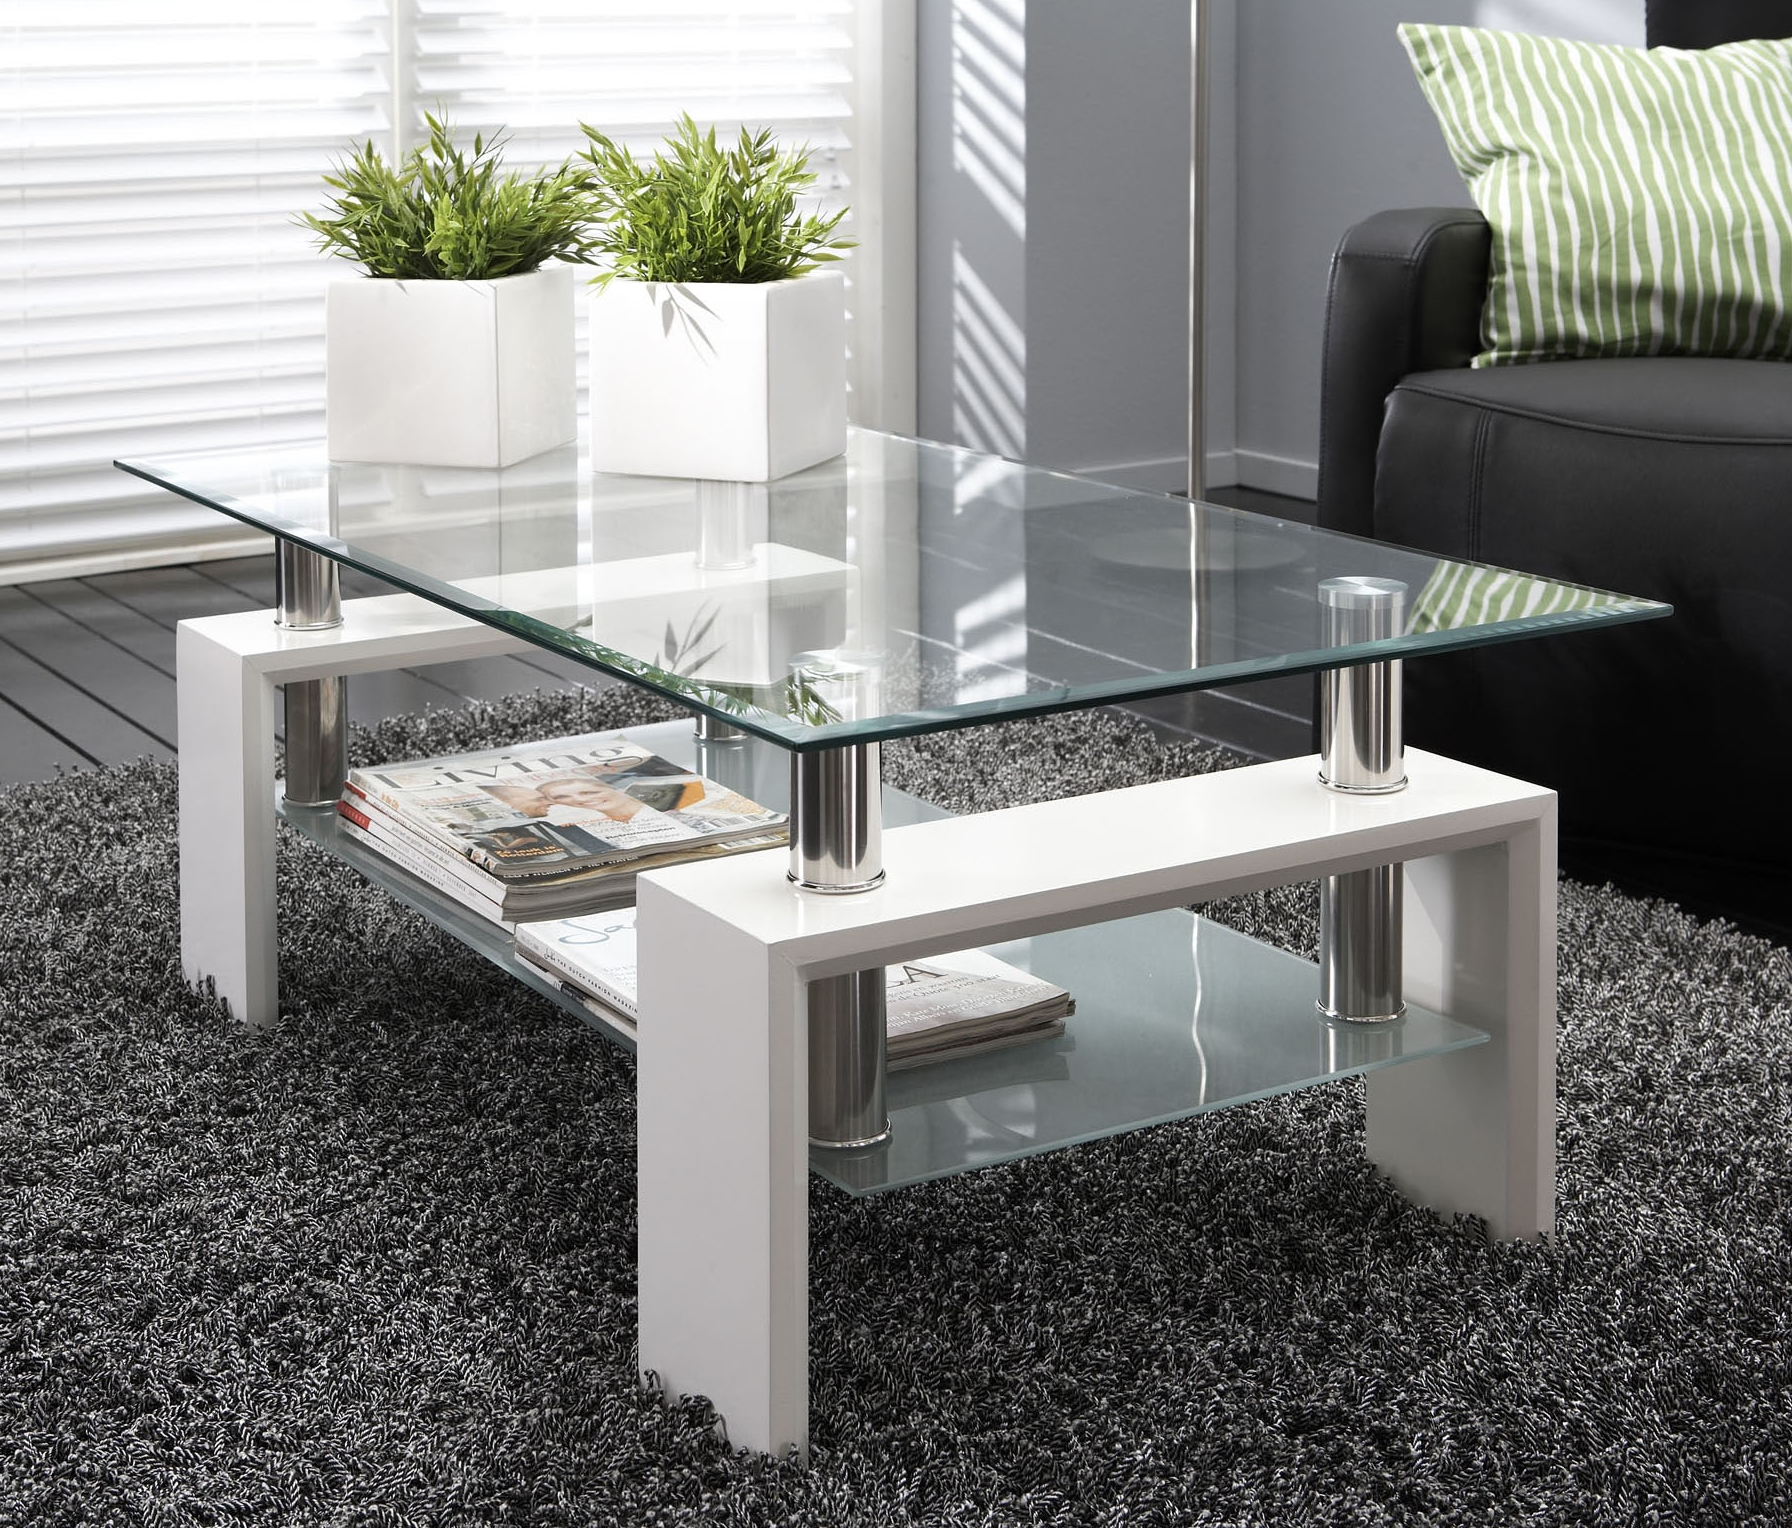 Table Basse En Verre Ma Table Basse # Table Basse En Verre Tele